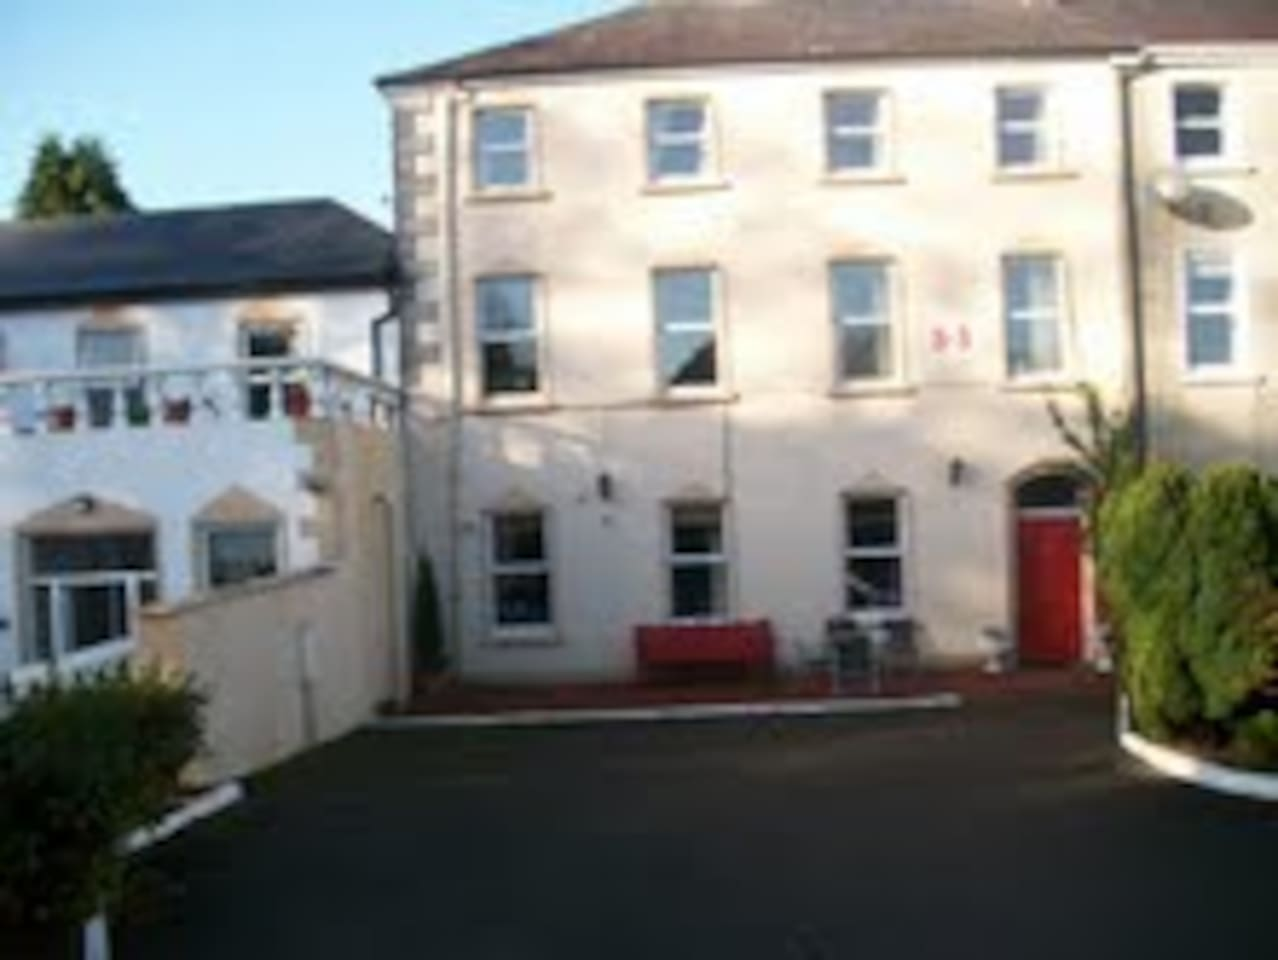 Margaret's B&B which has rooms & an apartment with secure, private parking in front of the B&B.